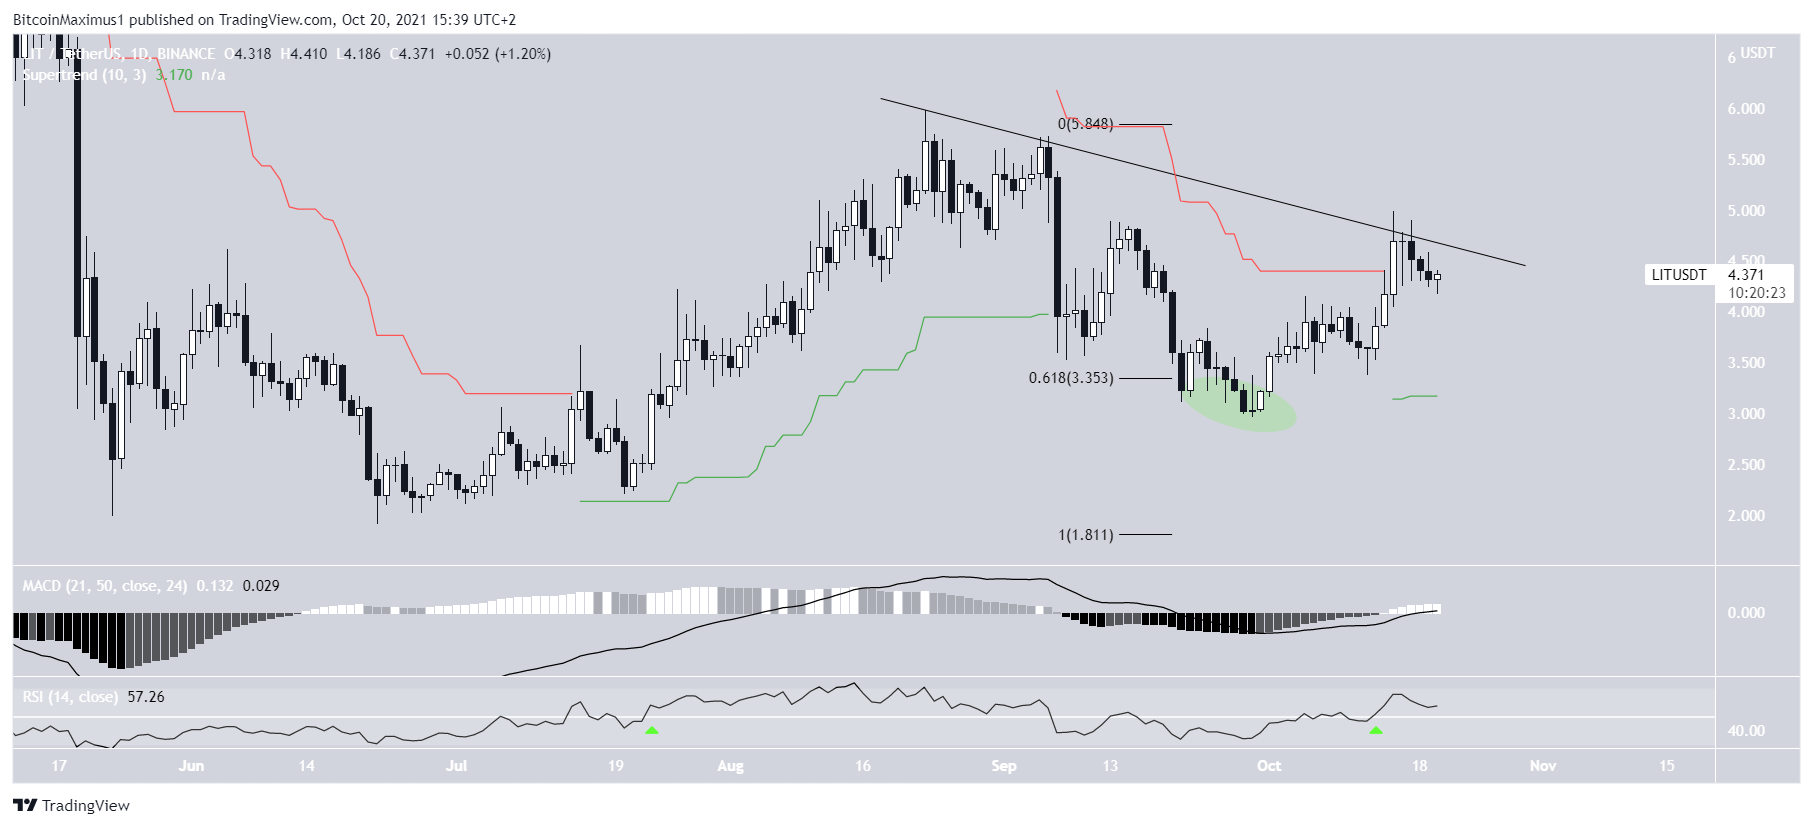 Lition (LIT) Could Confirm Bullish Trend With Breakout Above Resistance